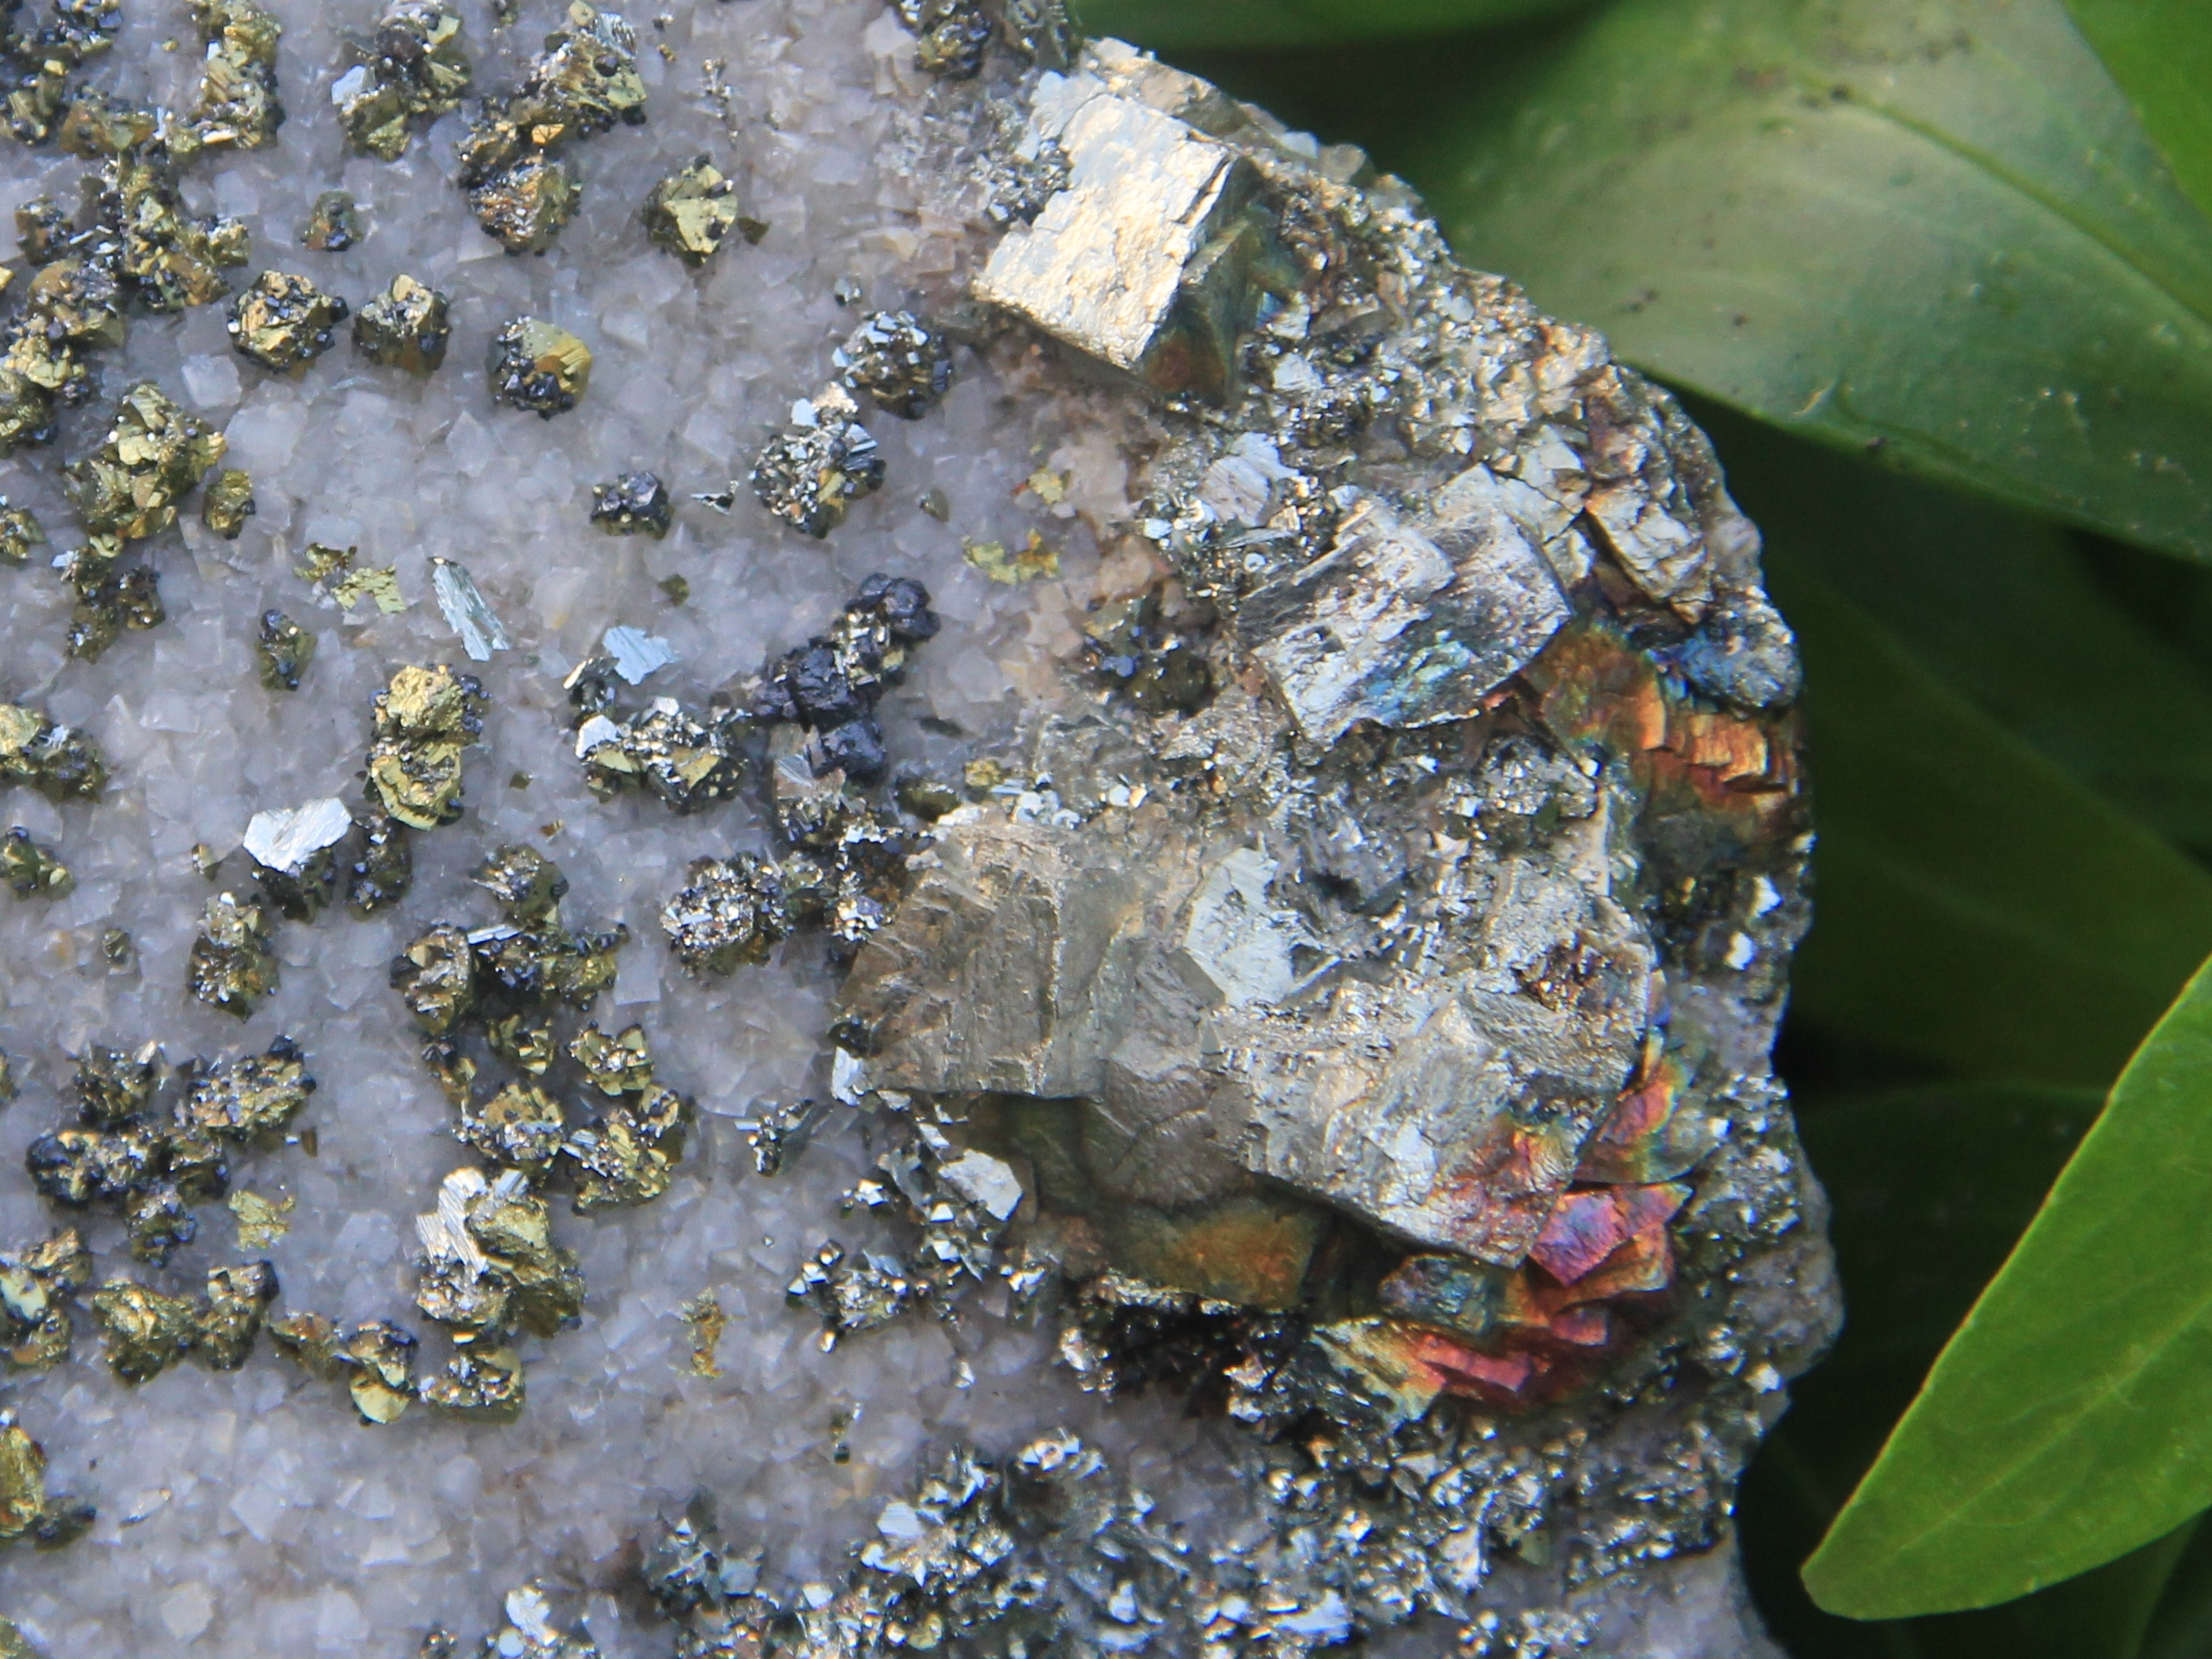 Marcasite, pyrite, and chalcopyrite crystals